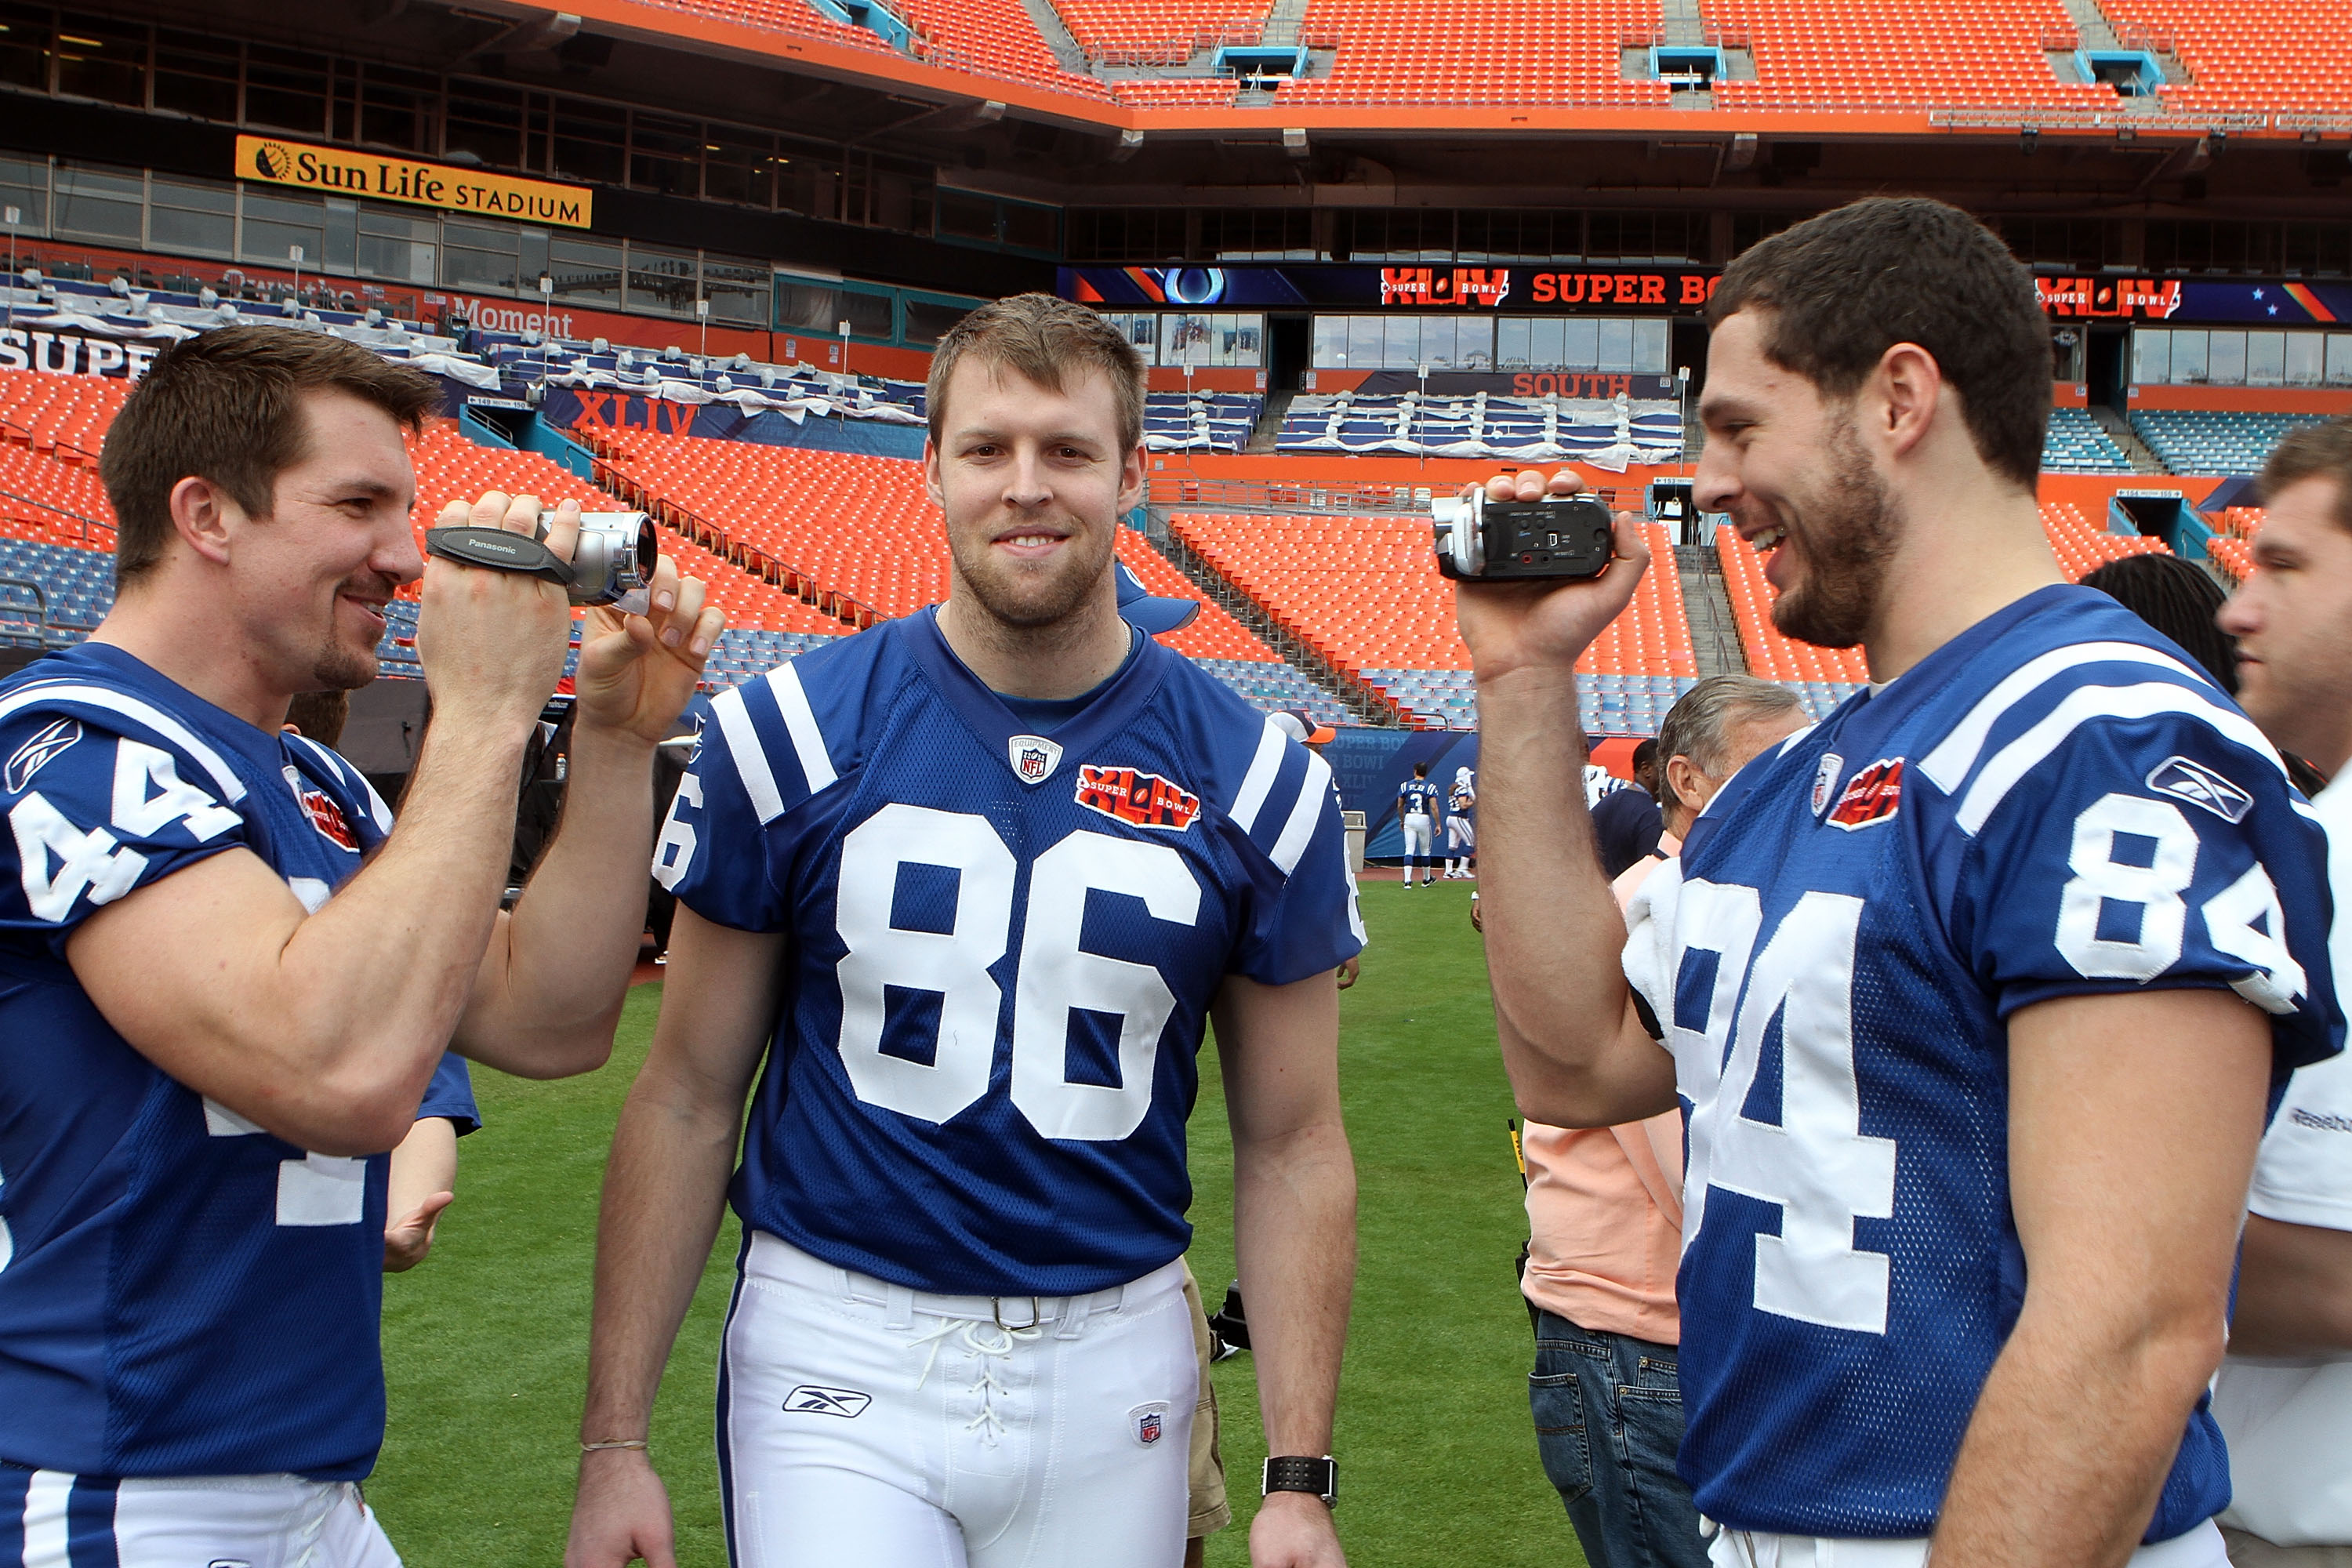 MIAMI GARDENS, FL - FEBRUARY 02:  Dallas Clark #44 of the Indianapolis Colts films teammate Jacob Tamme #84 as Tom Santi looks on during Super Bowl XLIV Media Day at Sun Life Stadium on February 2, 2010 in Miami Gardens, Florida.  (Photo by Doug Benc/Gett